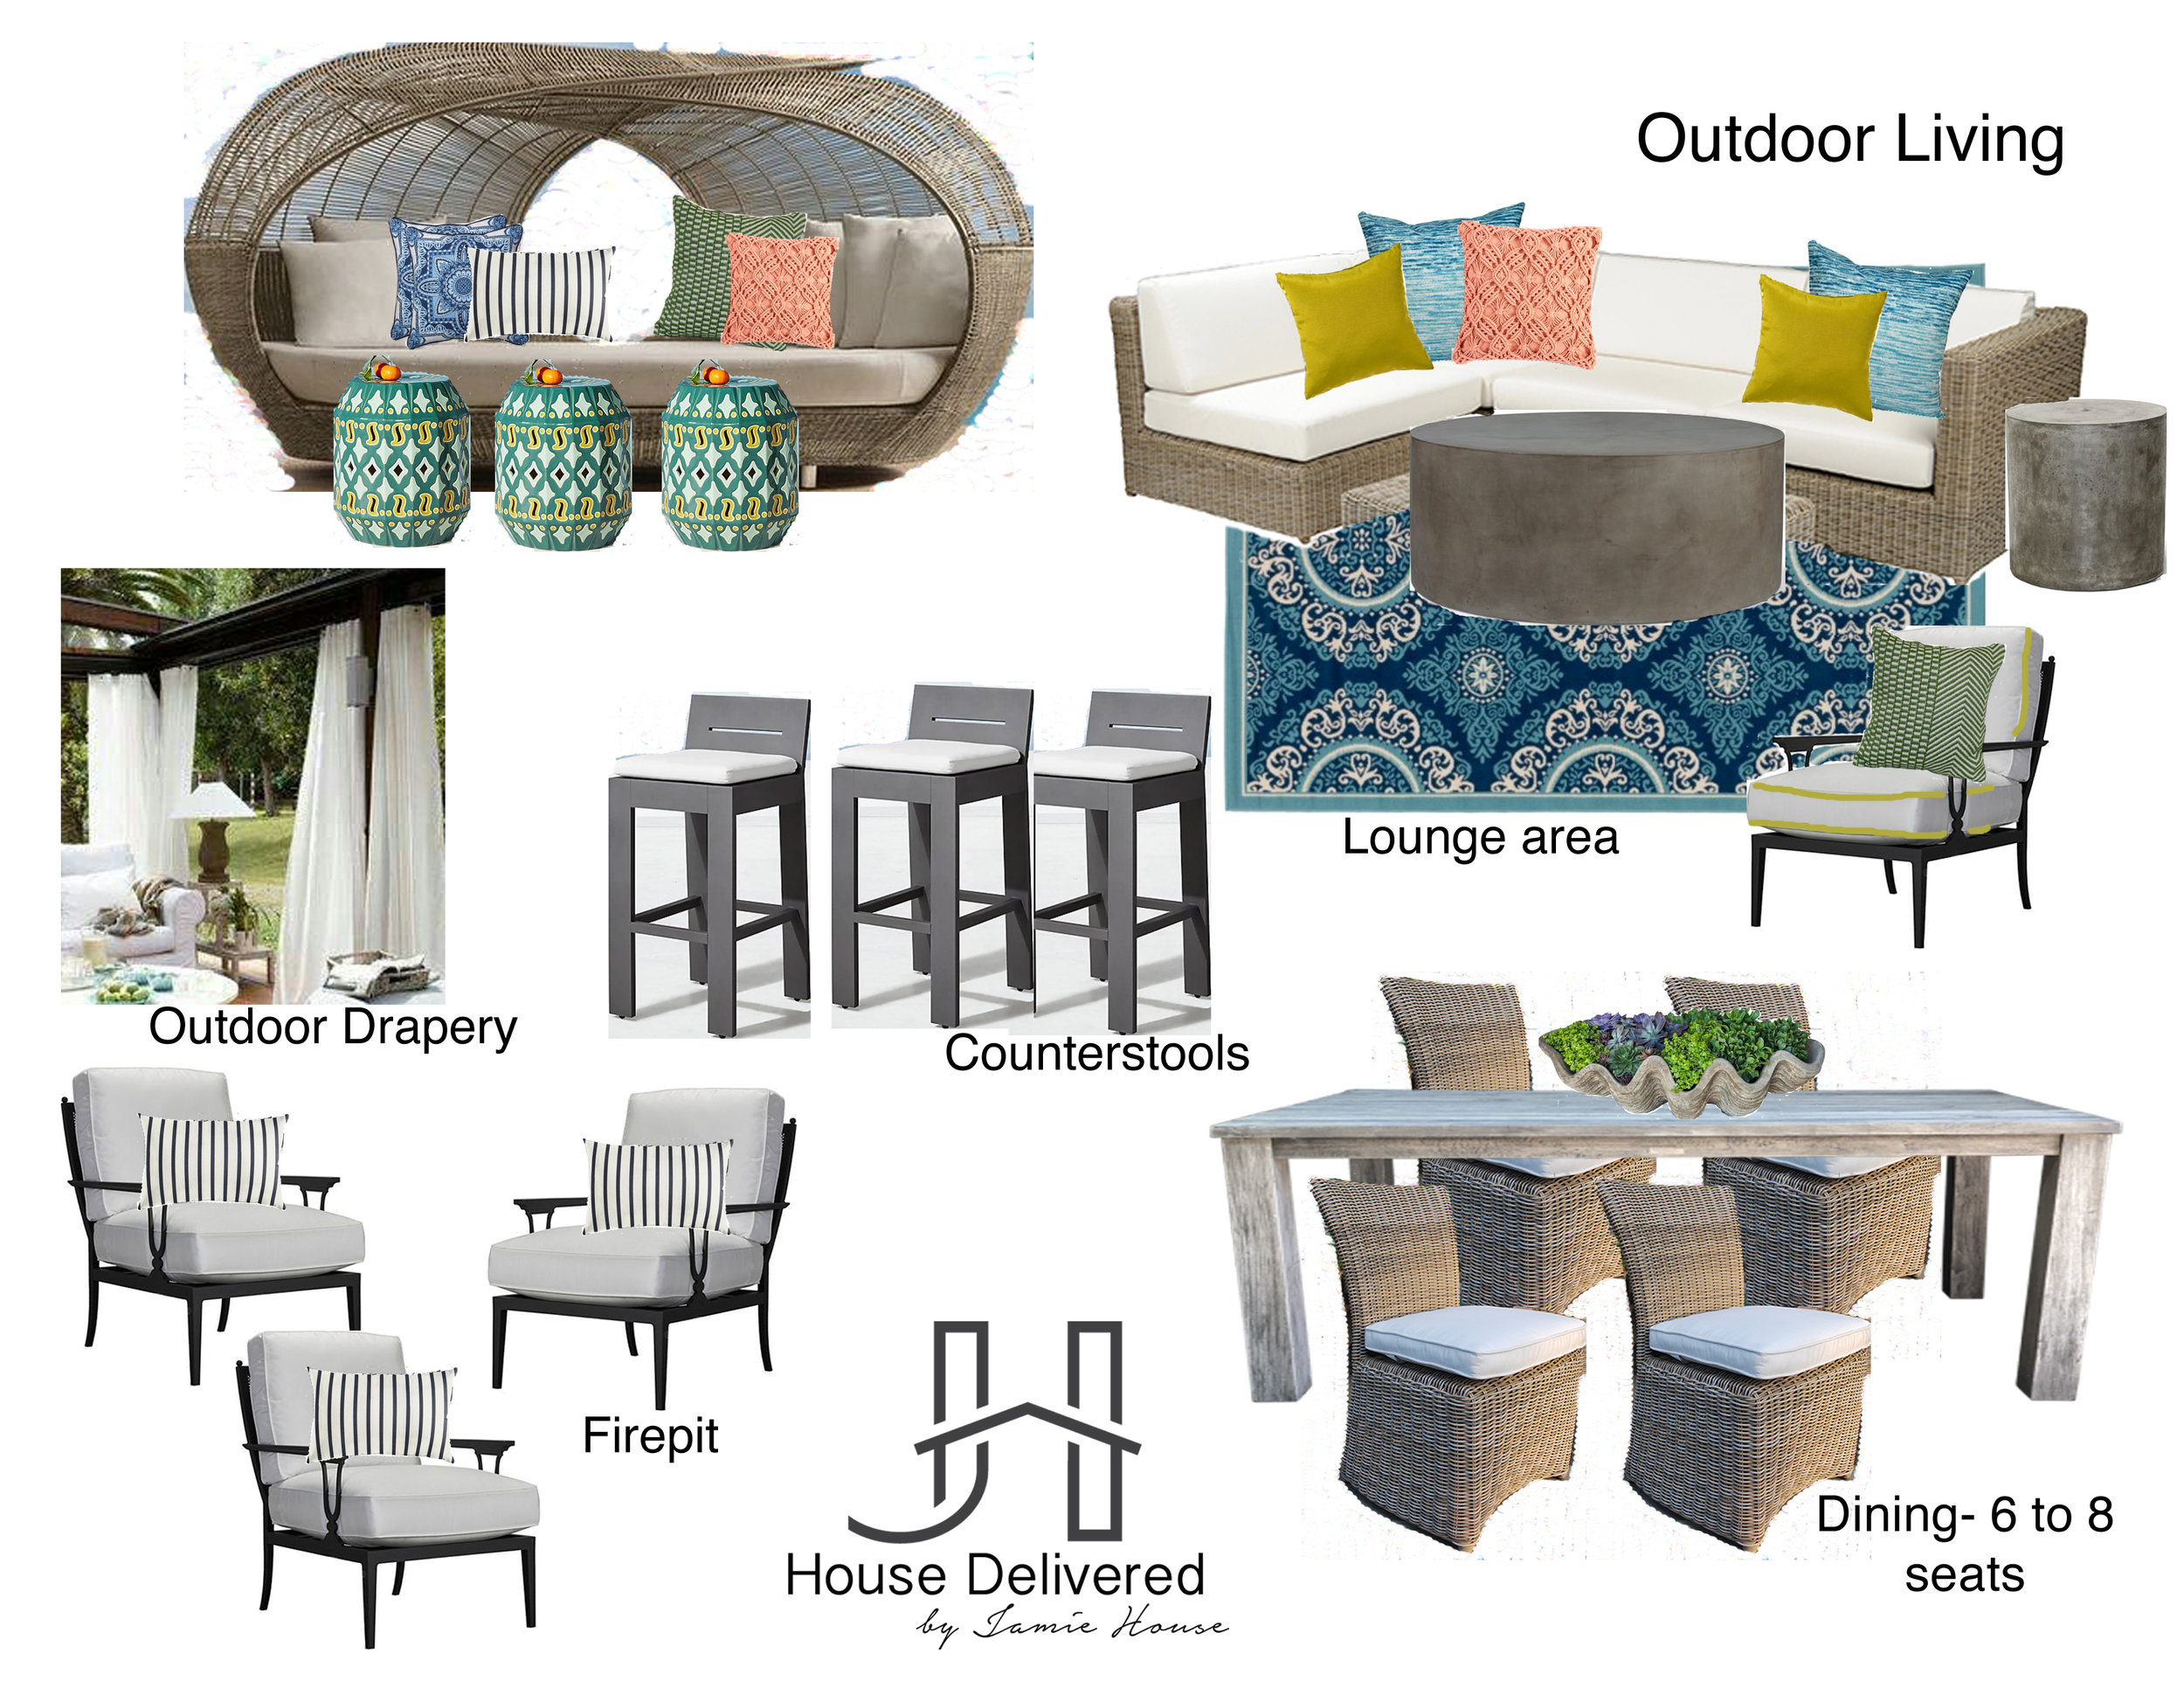 Outdoor pool area mood board by House Delivered, Jamie House Design's EDesign service